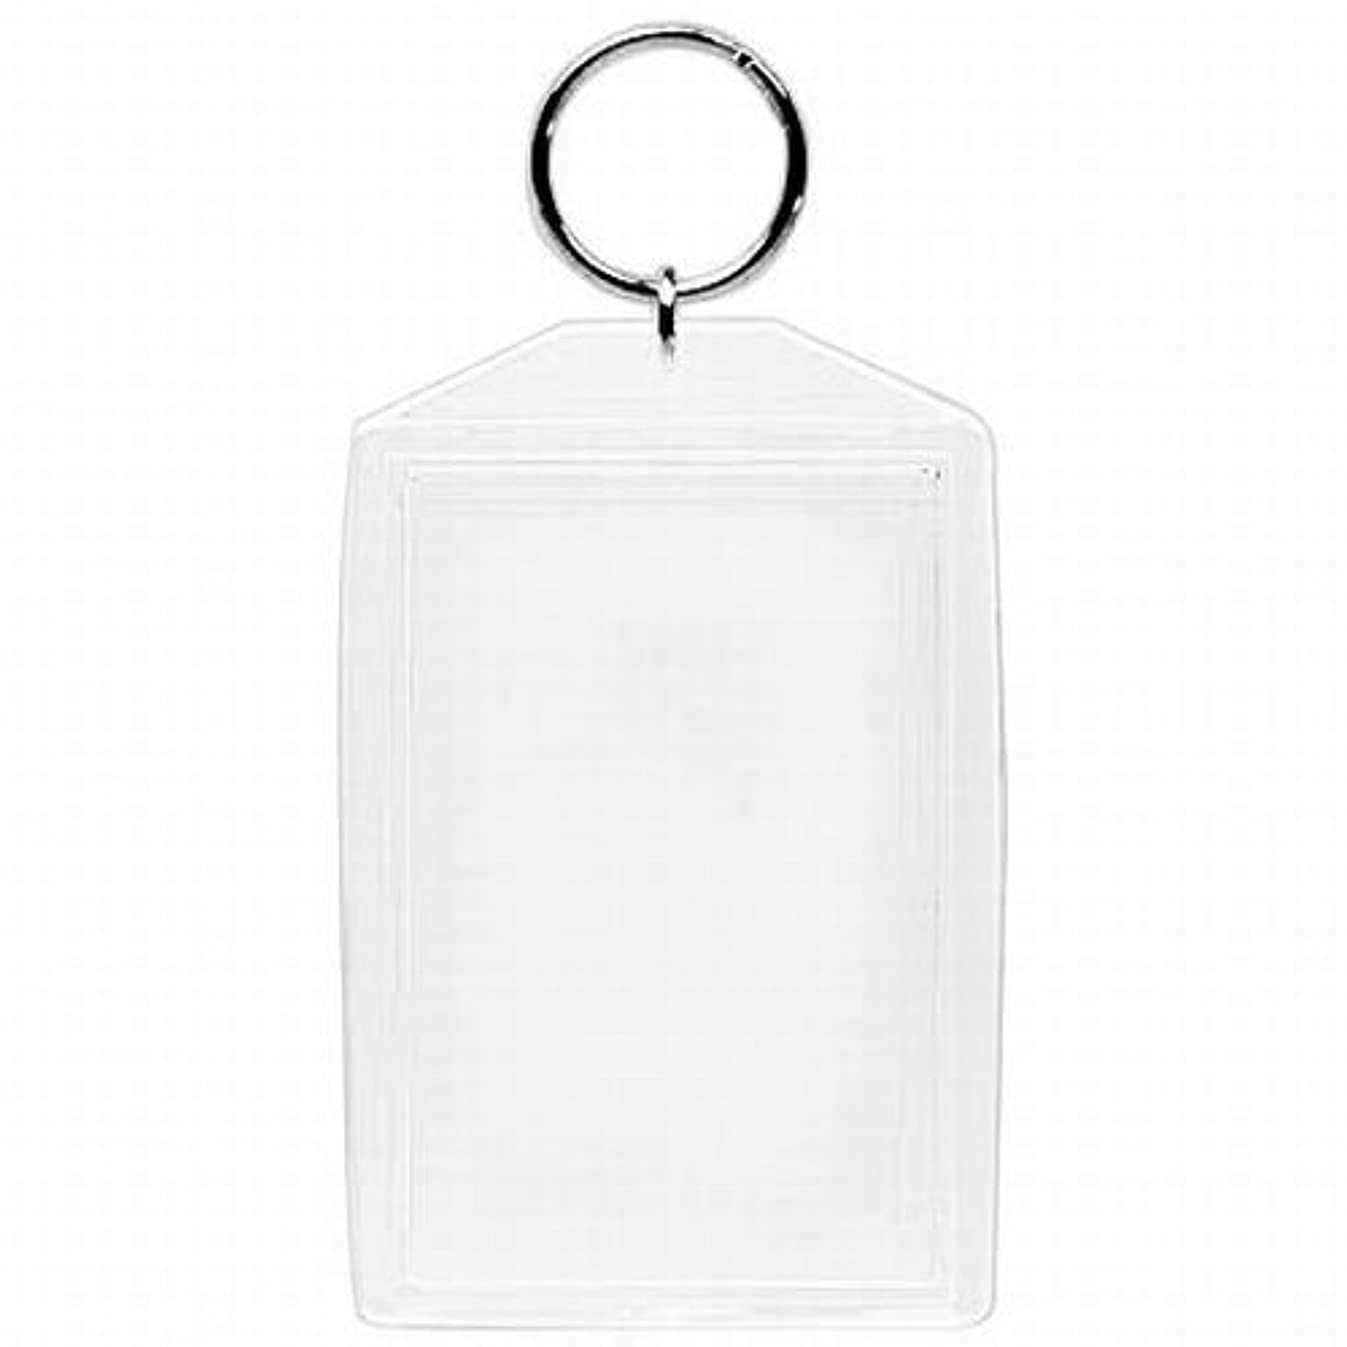 Acrylic Photo Snap-in Key Chain-2x3 (Pack of 25)